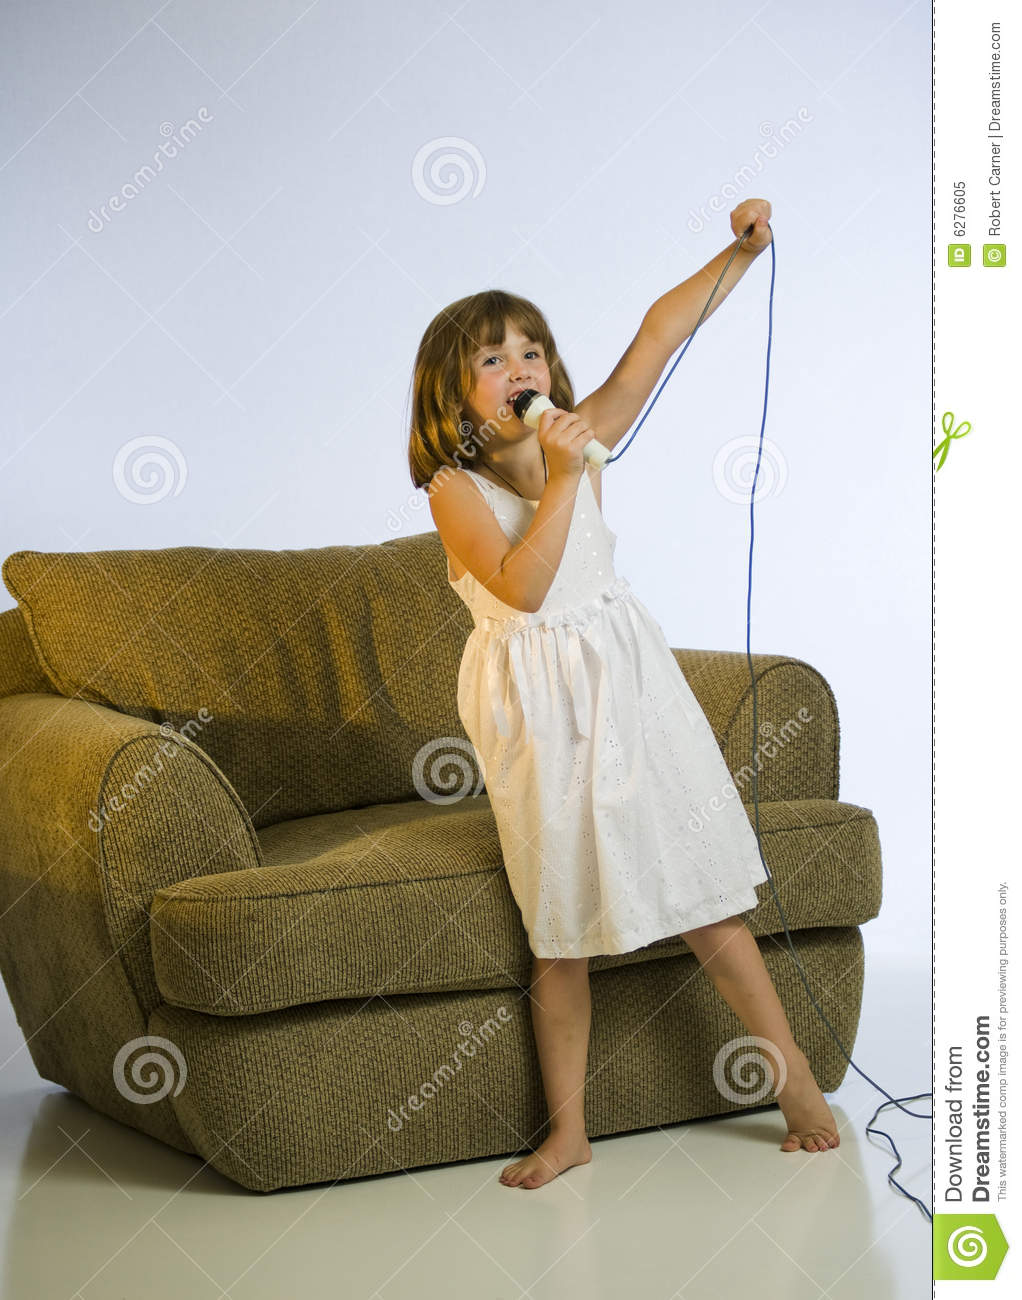 Little Girl Singing In A Microphone Stock Image - Image of ...